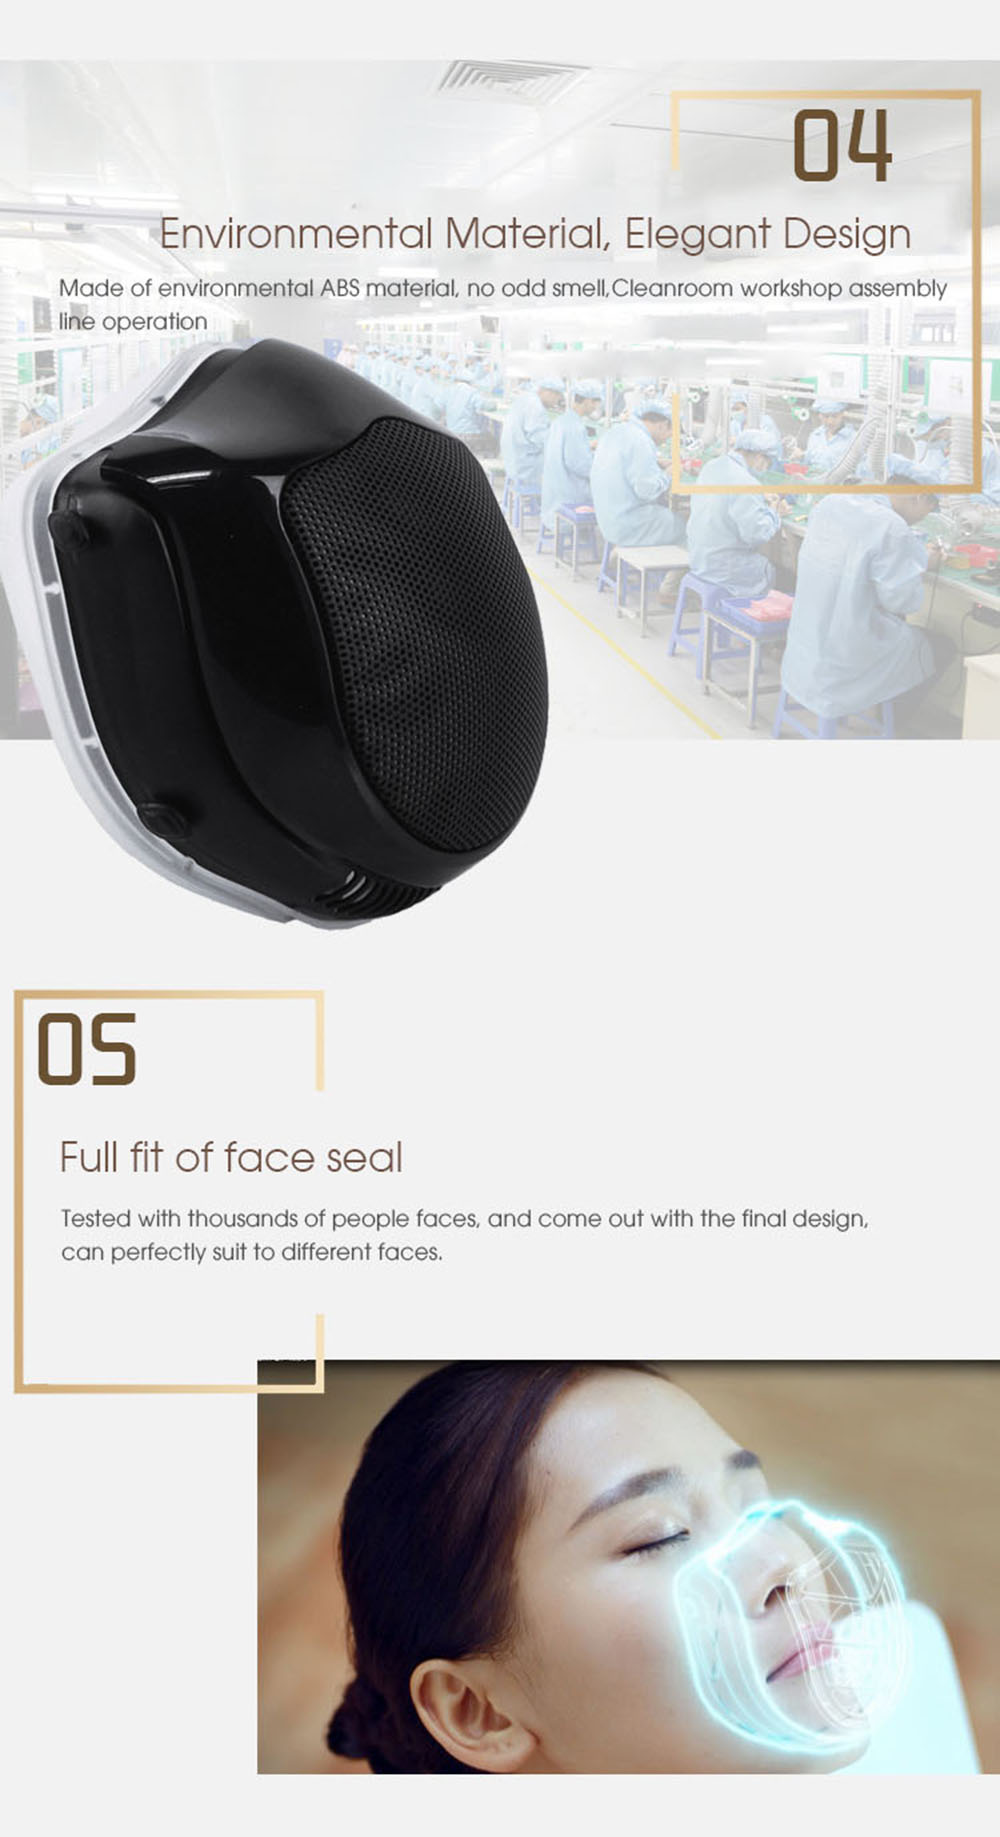 2020 stock Xiaomi Mi Q5PRO 5V USB electric masks- anti-haze sterilizing provides active air breath valve HEPA filter face cover